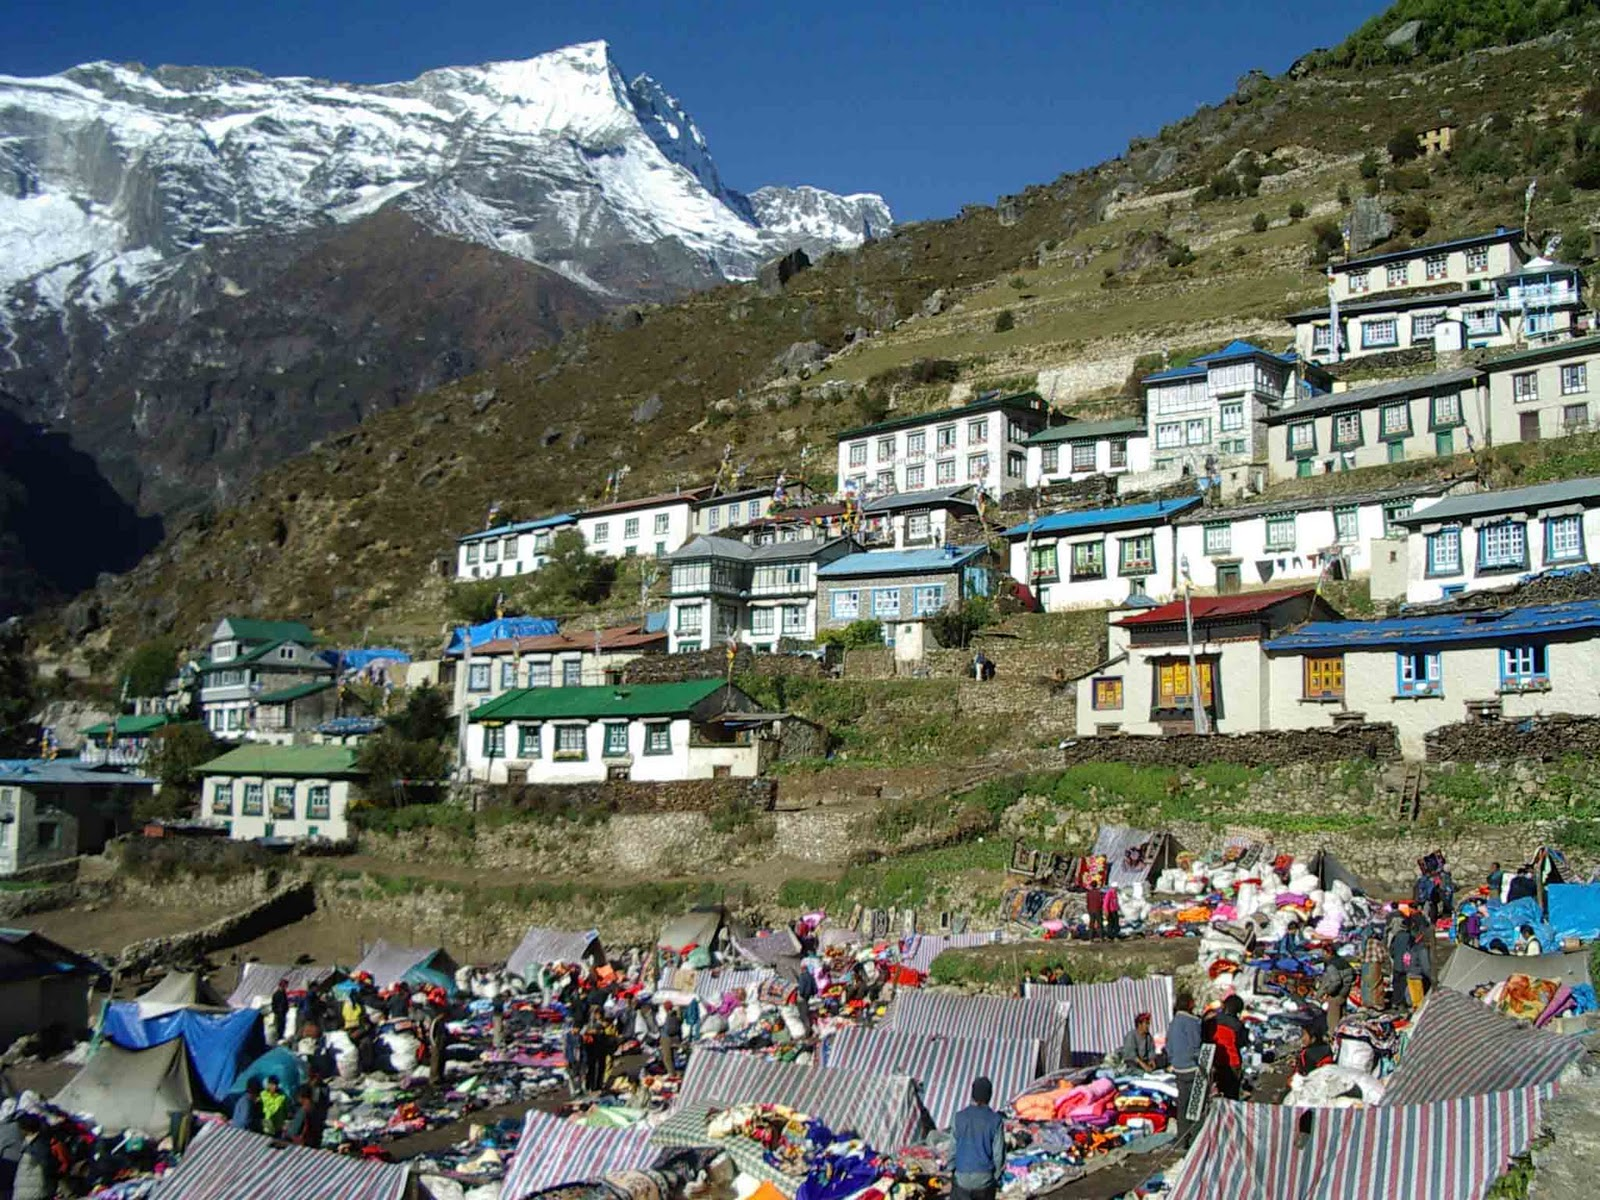 At Namche we have emerged from the narrow lowland valleys and after an ...